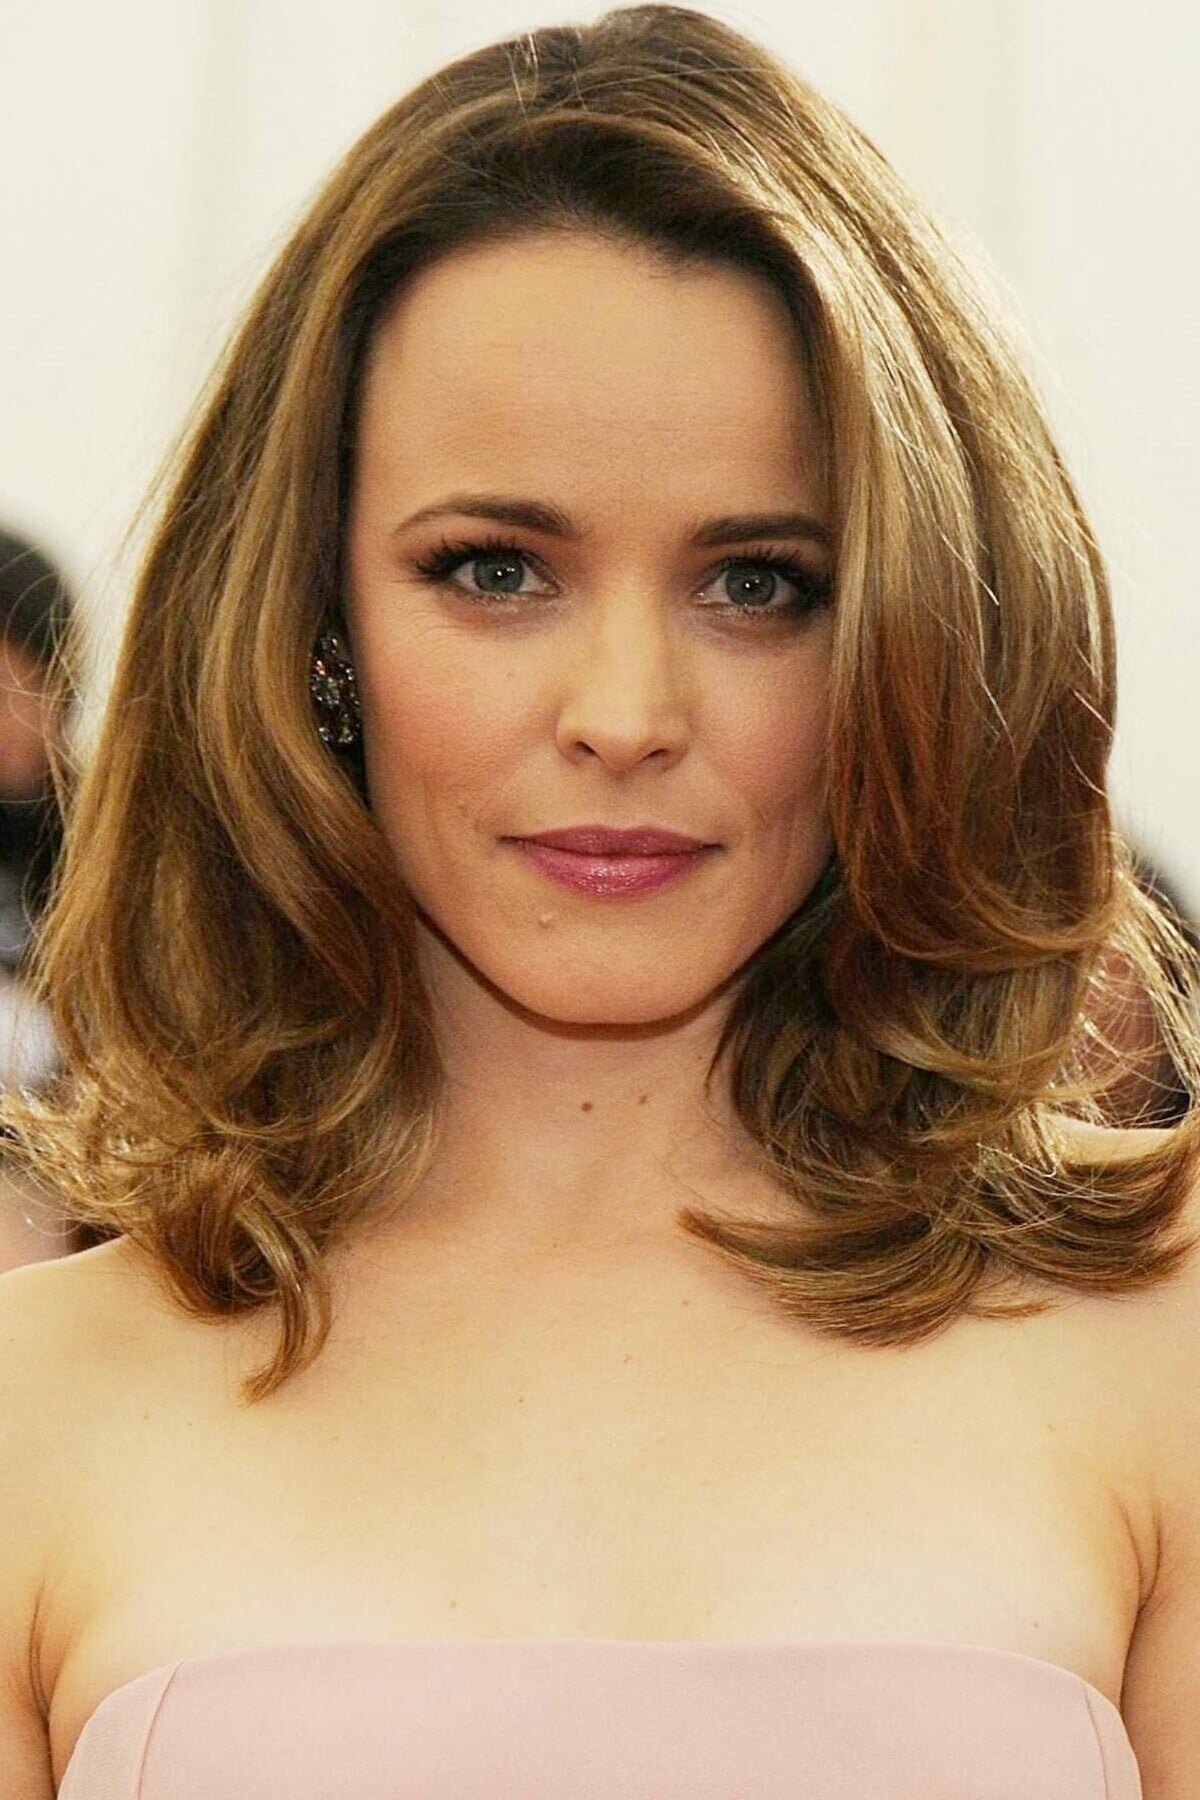 Wallpapers For 11 Year Old Girls Rachel Mcadams Filmography And Biography On Movies Film